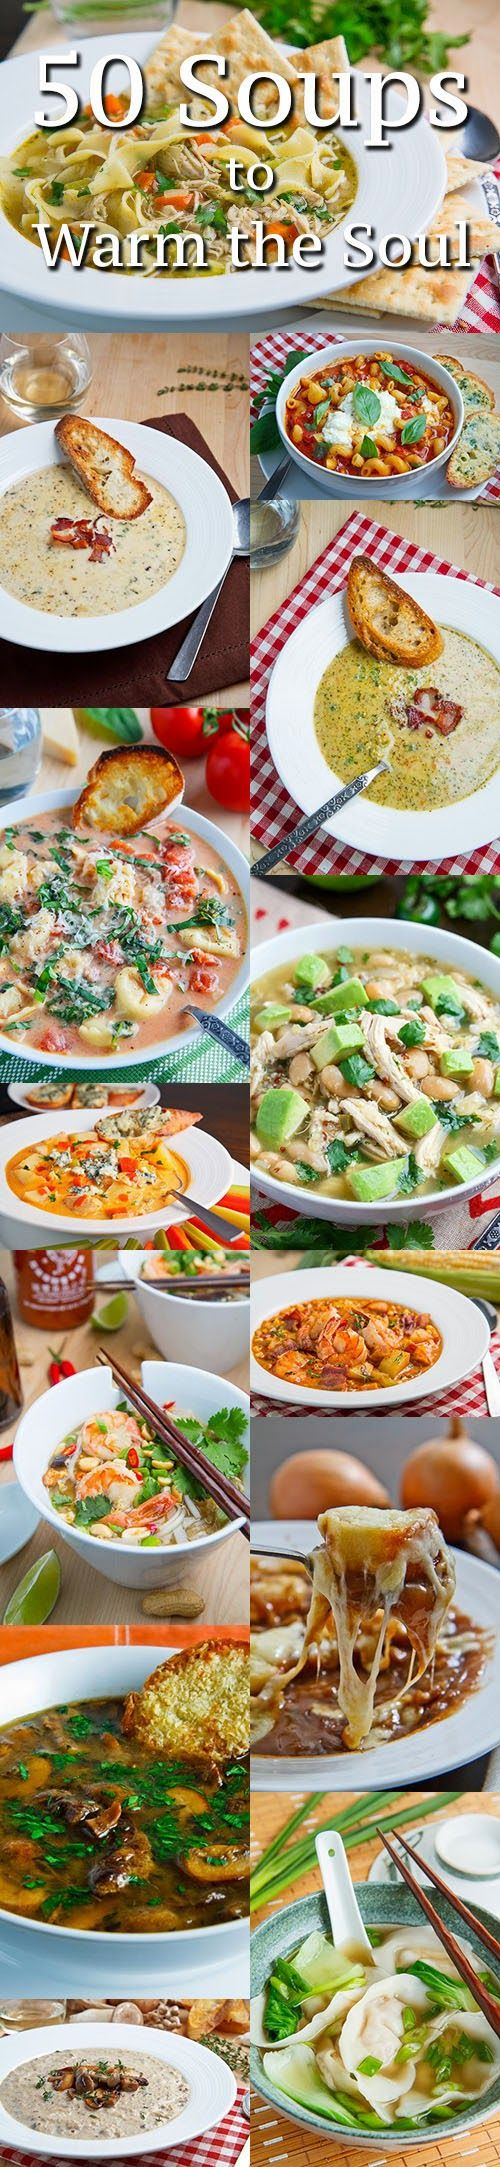 50 Soups to Warm the Soul